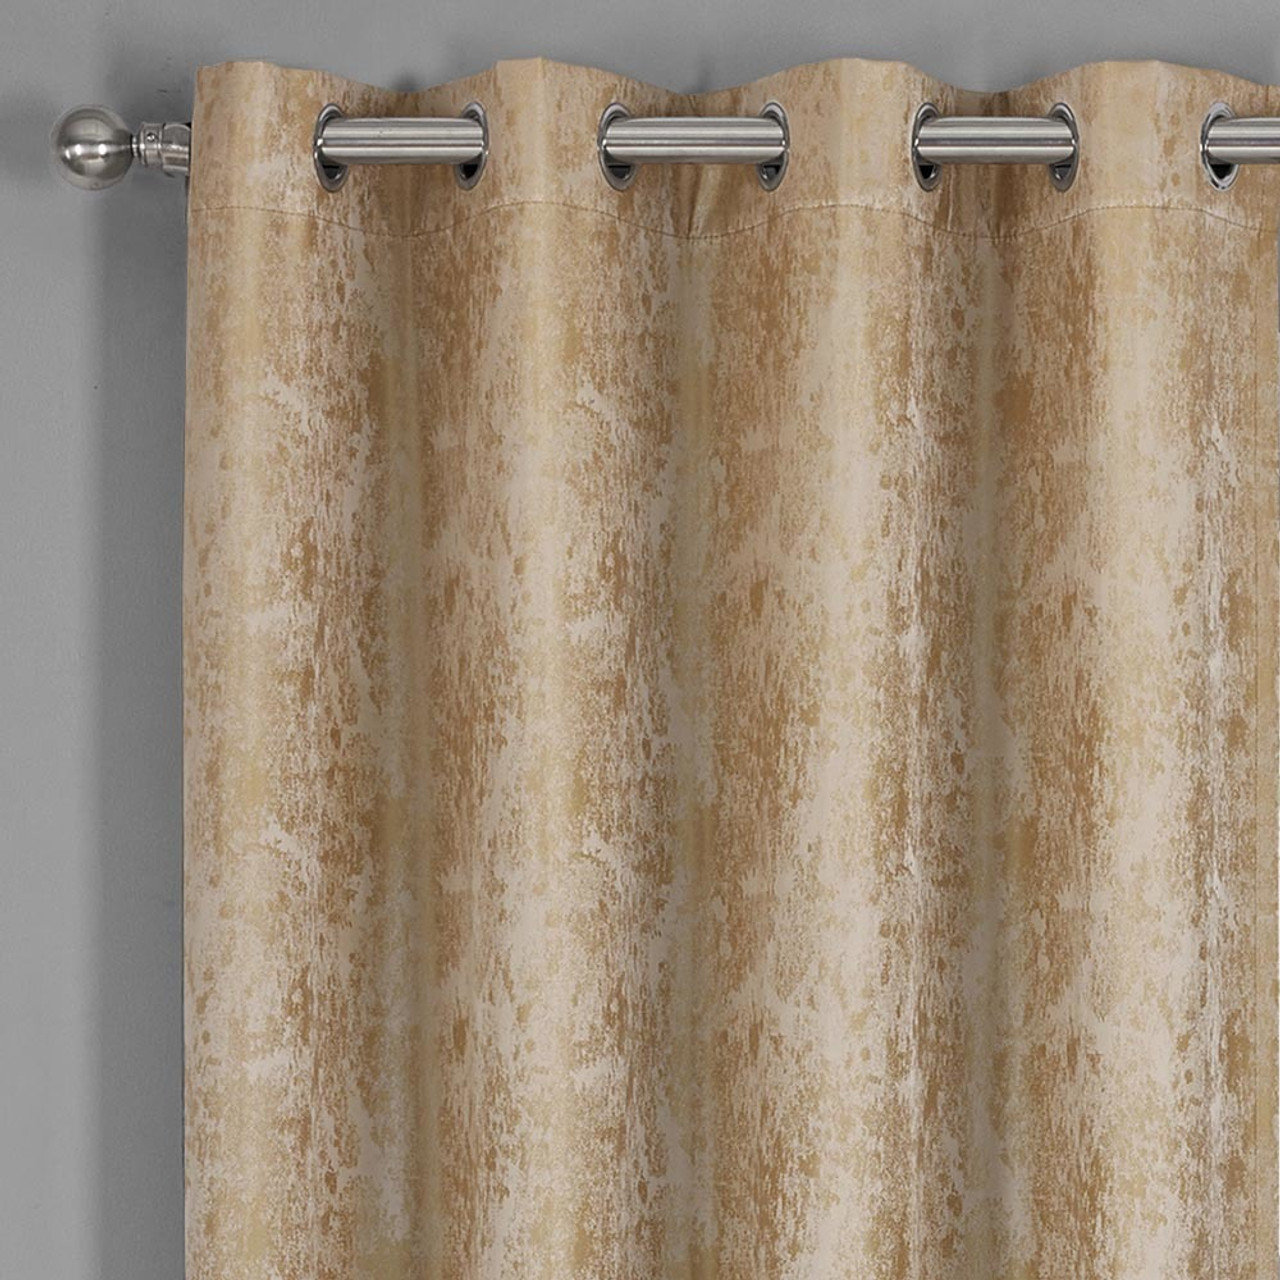 blackout styles rv curtains hooks diy uncategorized track pipe of shocking shower curtain sxs rod inspiration and pict tan